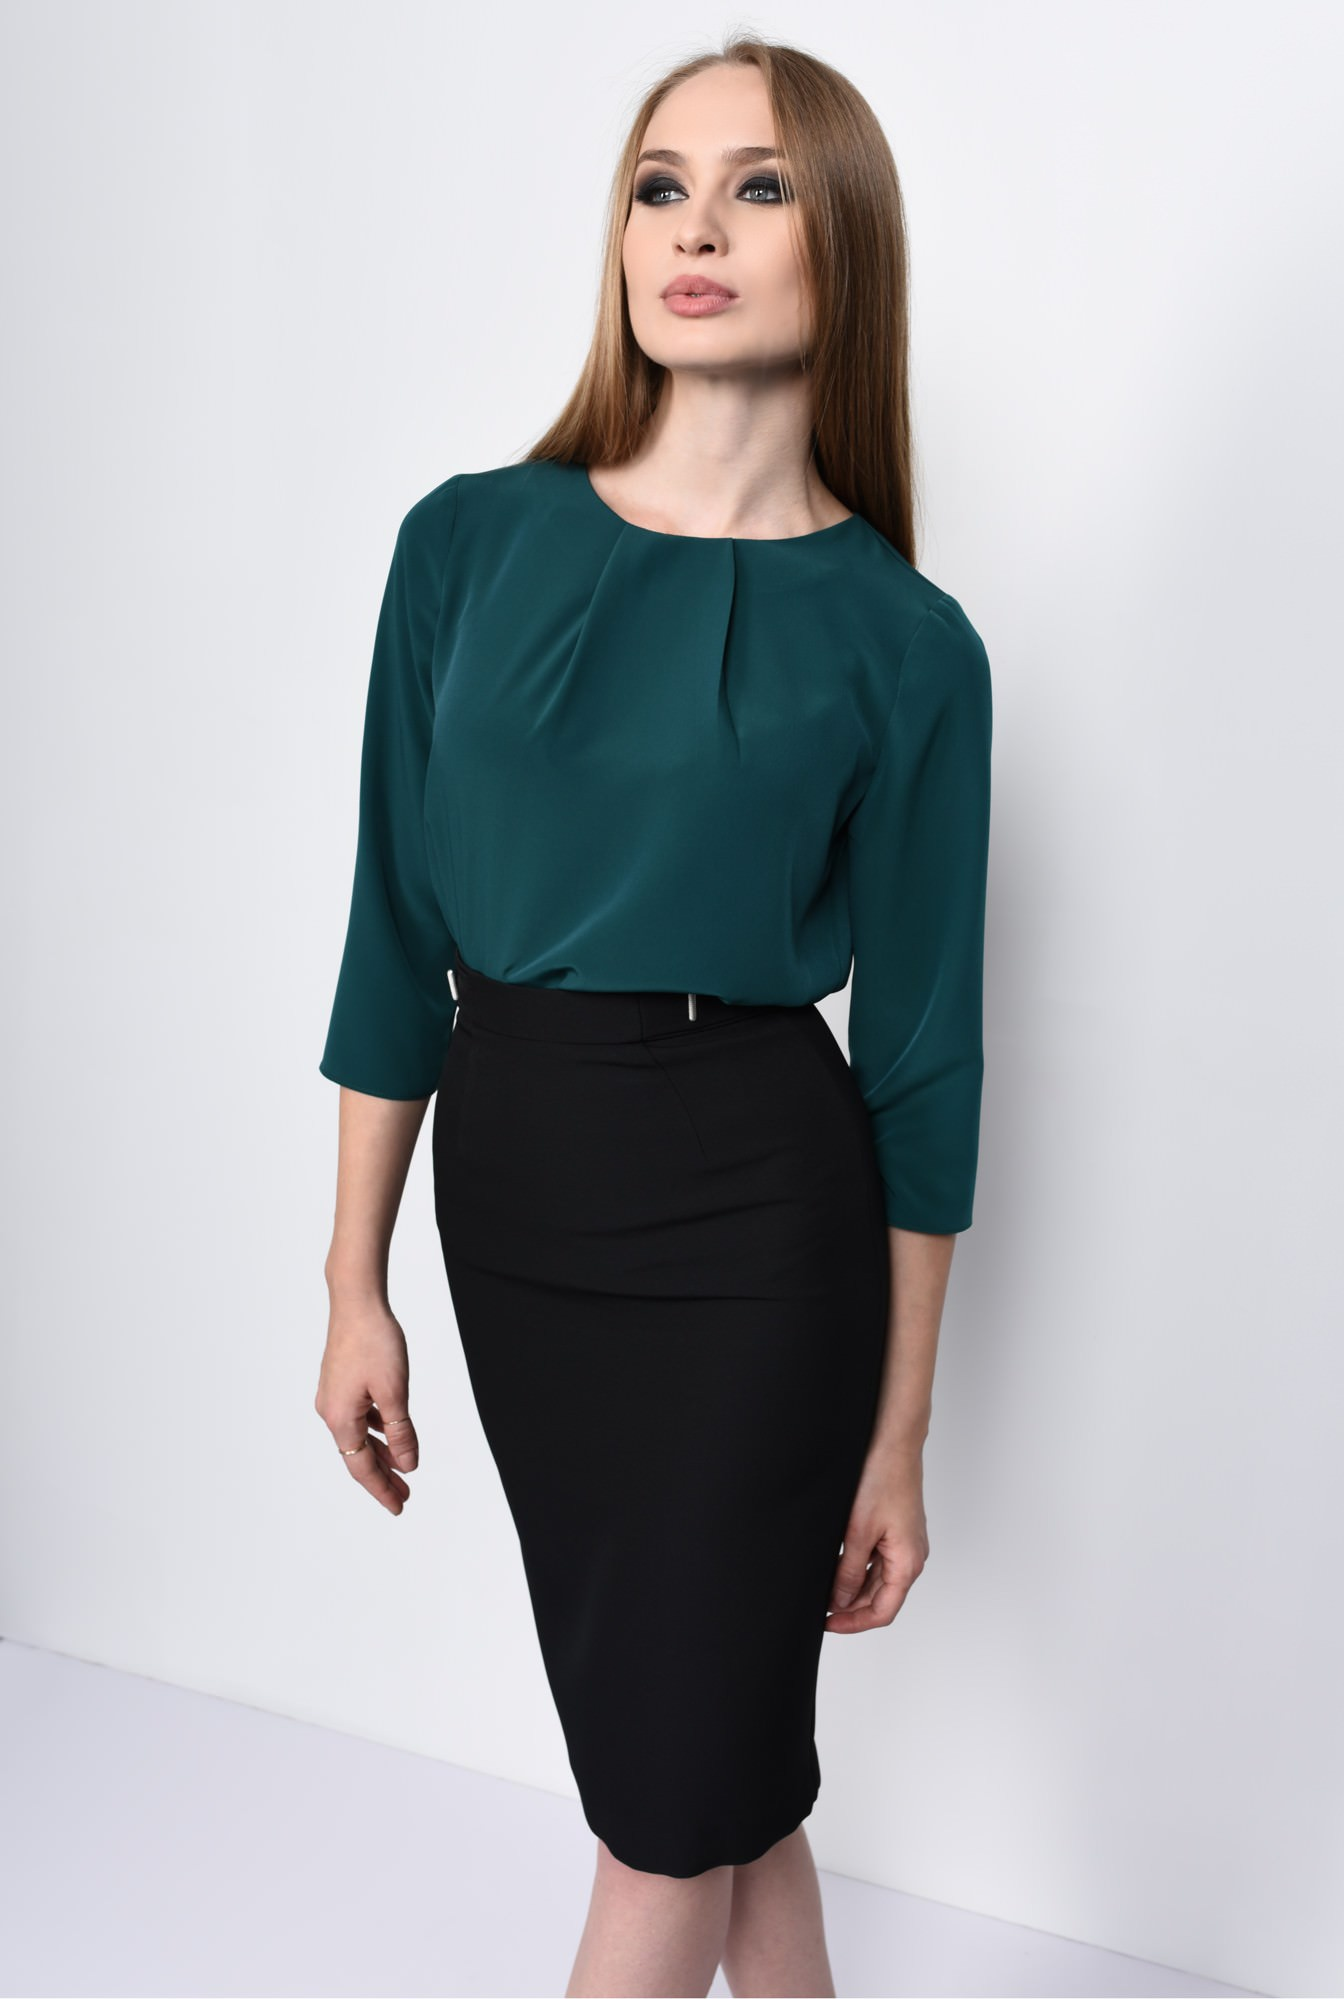 2 - BLUZA OFFICE BL 151-VERDE